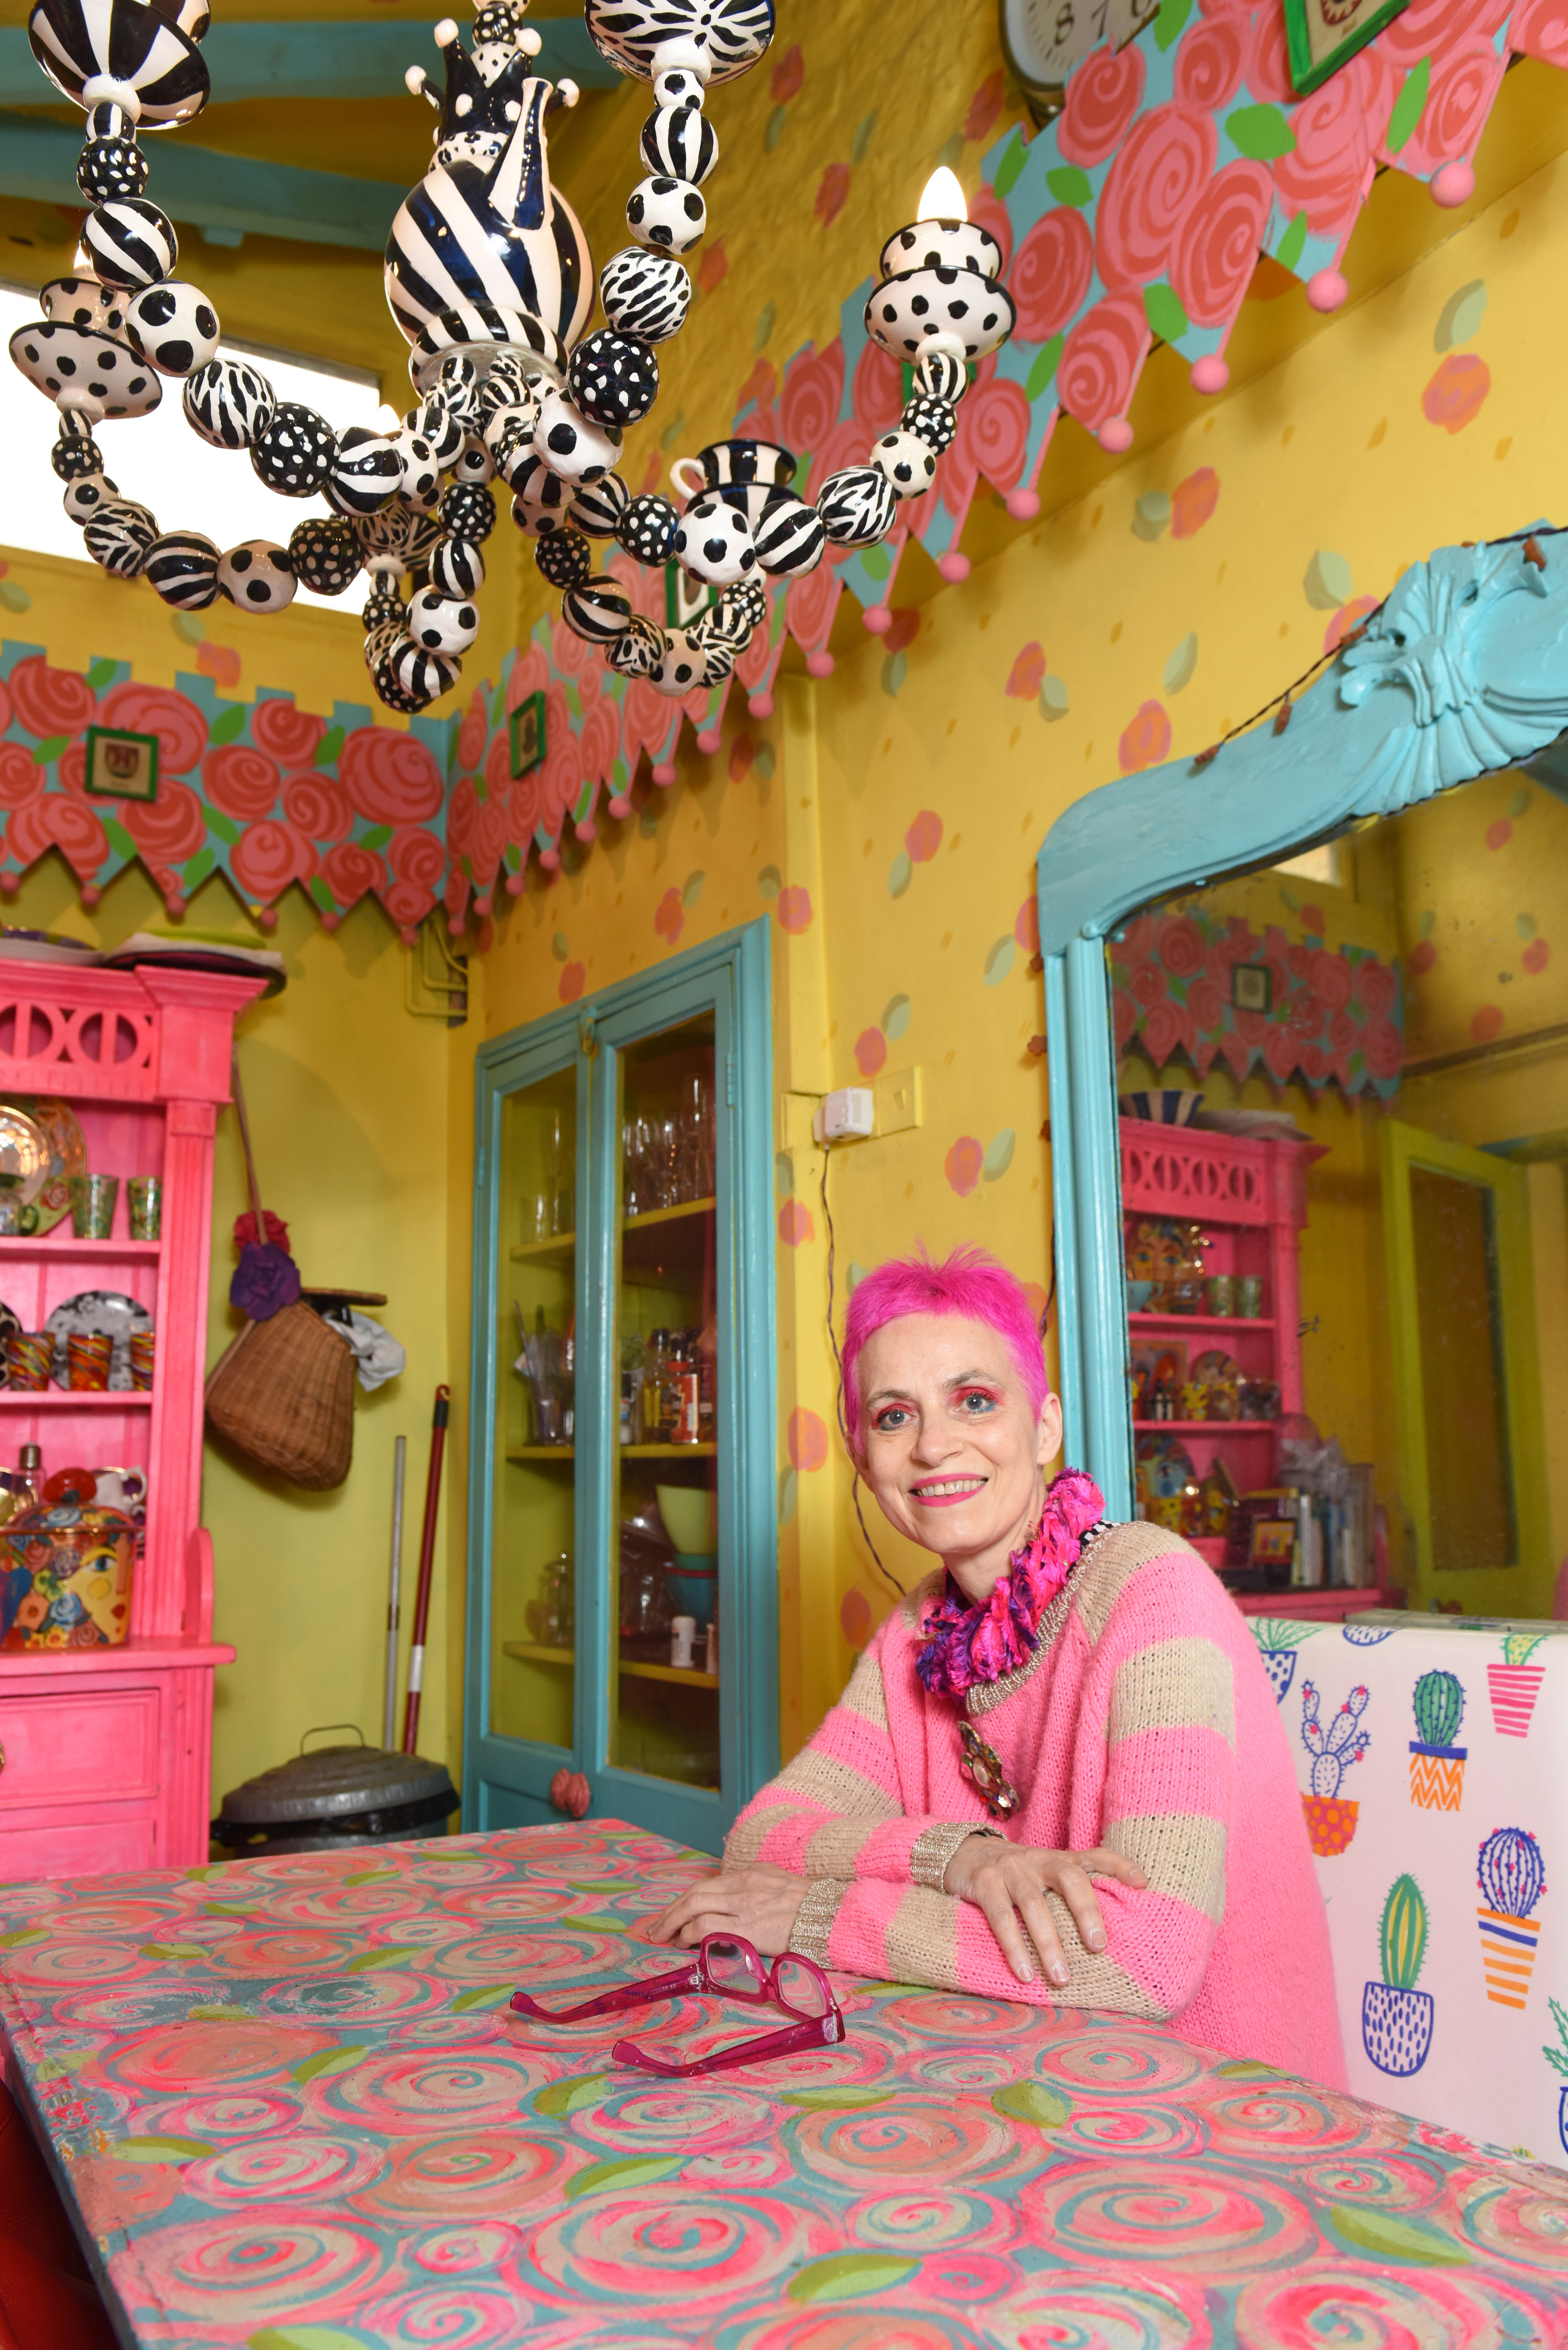 PIC BY MERCURY PRESS (PICTURED Potter, Mary Rose Young, 61 has made her £500,000 home unsellable with her eccentric, colourful decor) A woman who spent more than 30 years turning her rundown cottage into a life-size doll house says her colourful decoration has made the house - which should be worth upwards of half a million pounds - unsellable.  Potter, Mary Rose Young, 61, has been painting the beautiful country cottage in leafy Lydney, Gloucs in her electric style by hand since 1987, when she bought the former squatter's house for just £30,000. After 27 years in the house, she put it on the market in 2014, where estate agents said the property should have been expected to fetch at least £500,000. But despite hoping to sell the property to open a B&B nearby, estate agents could only persuade one person to view the house - leaving the family stuck there. SEE MERCURY COPY